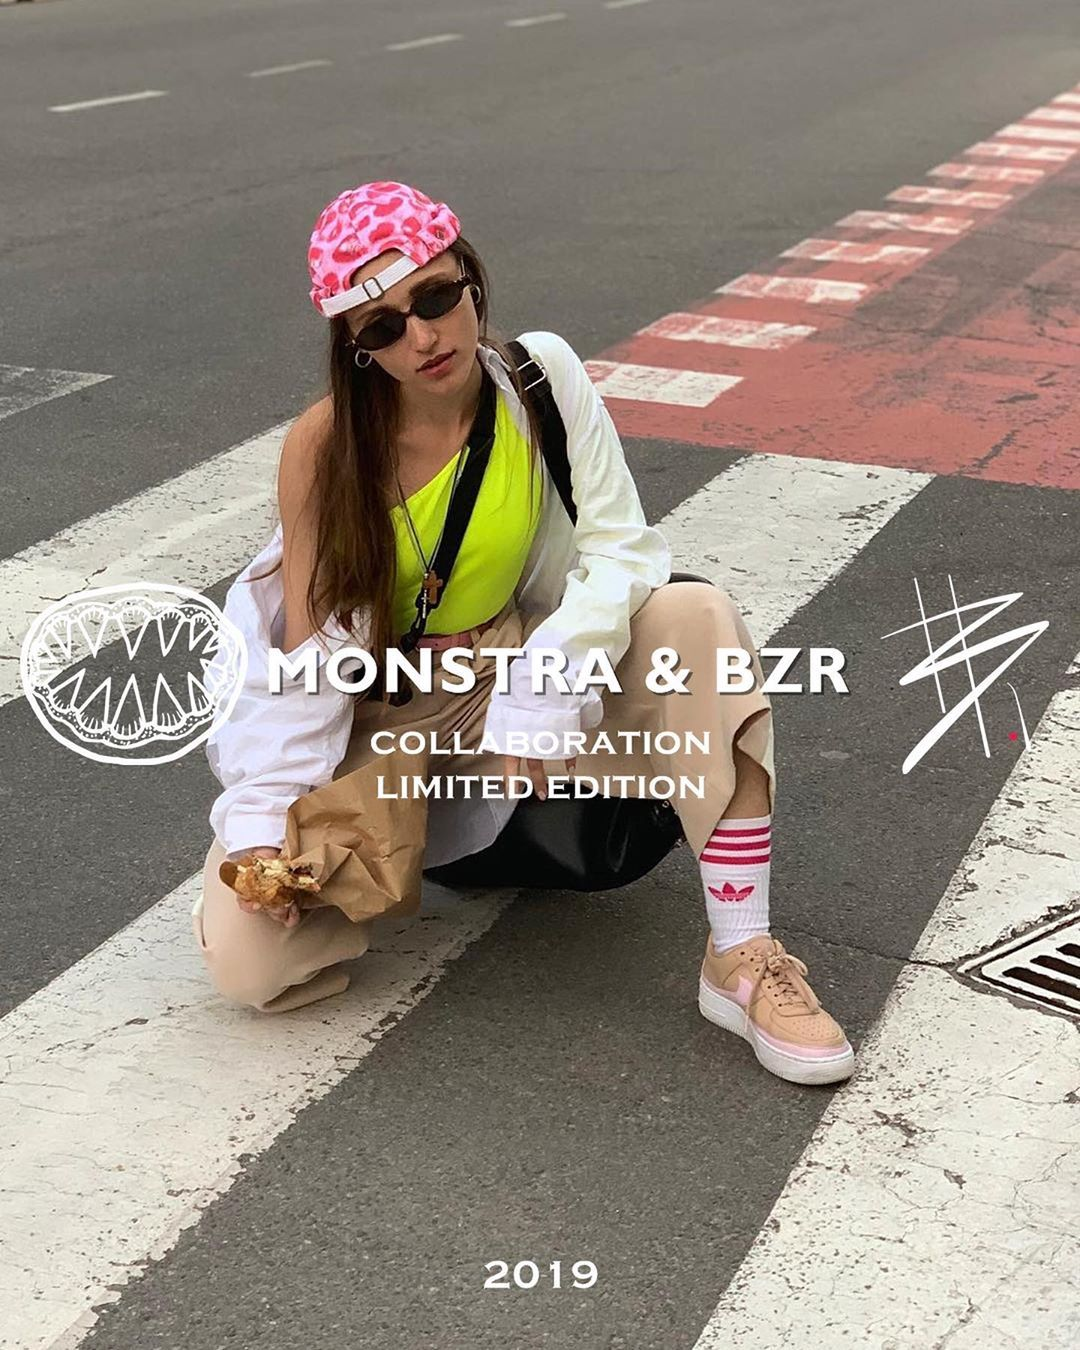 MONSTRA & BZR COLLABORATION